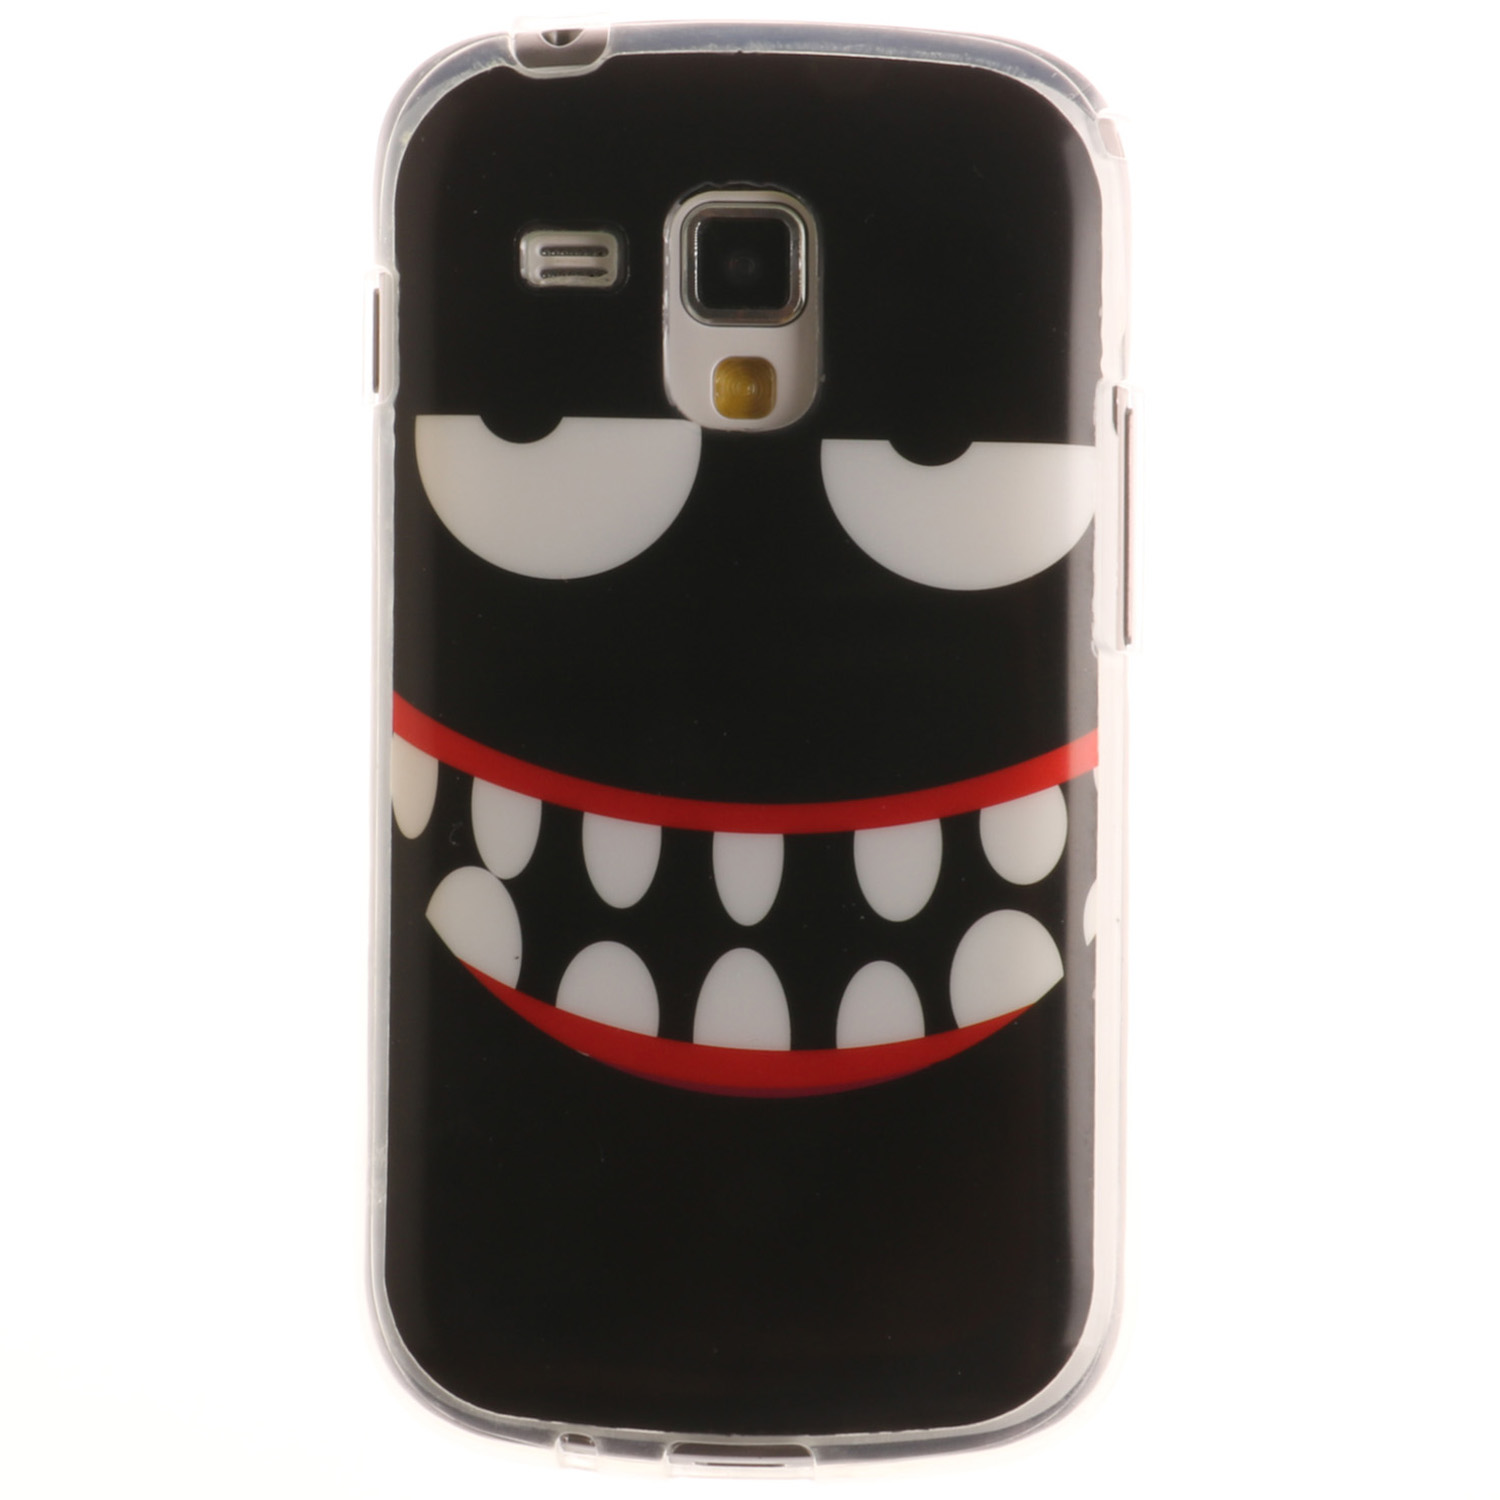 Cover For Samsung S7562 Case S 7562 Soft TPU Fashion IMD Case For Samsung Galaxy S7562 Fundas Phone ShockProof Silicone Coque(China (Mainland))